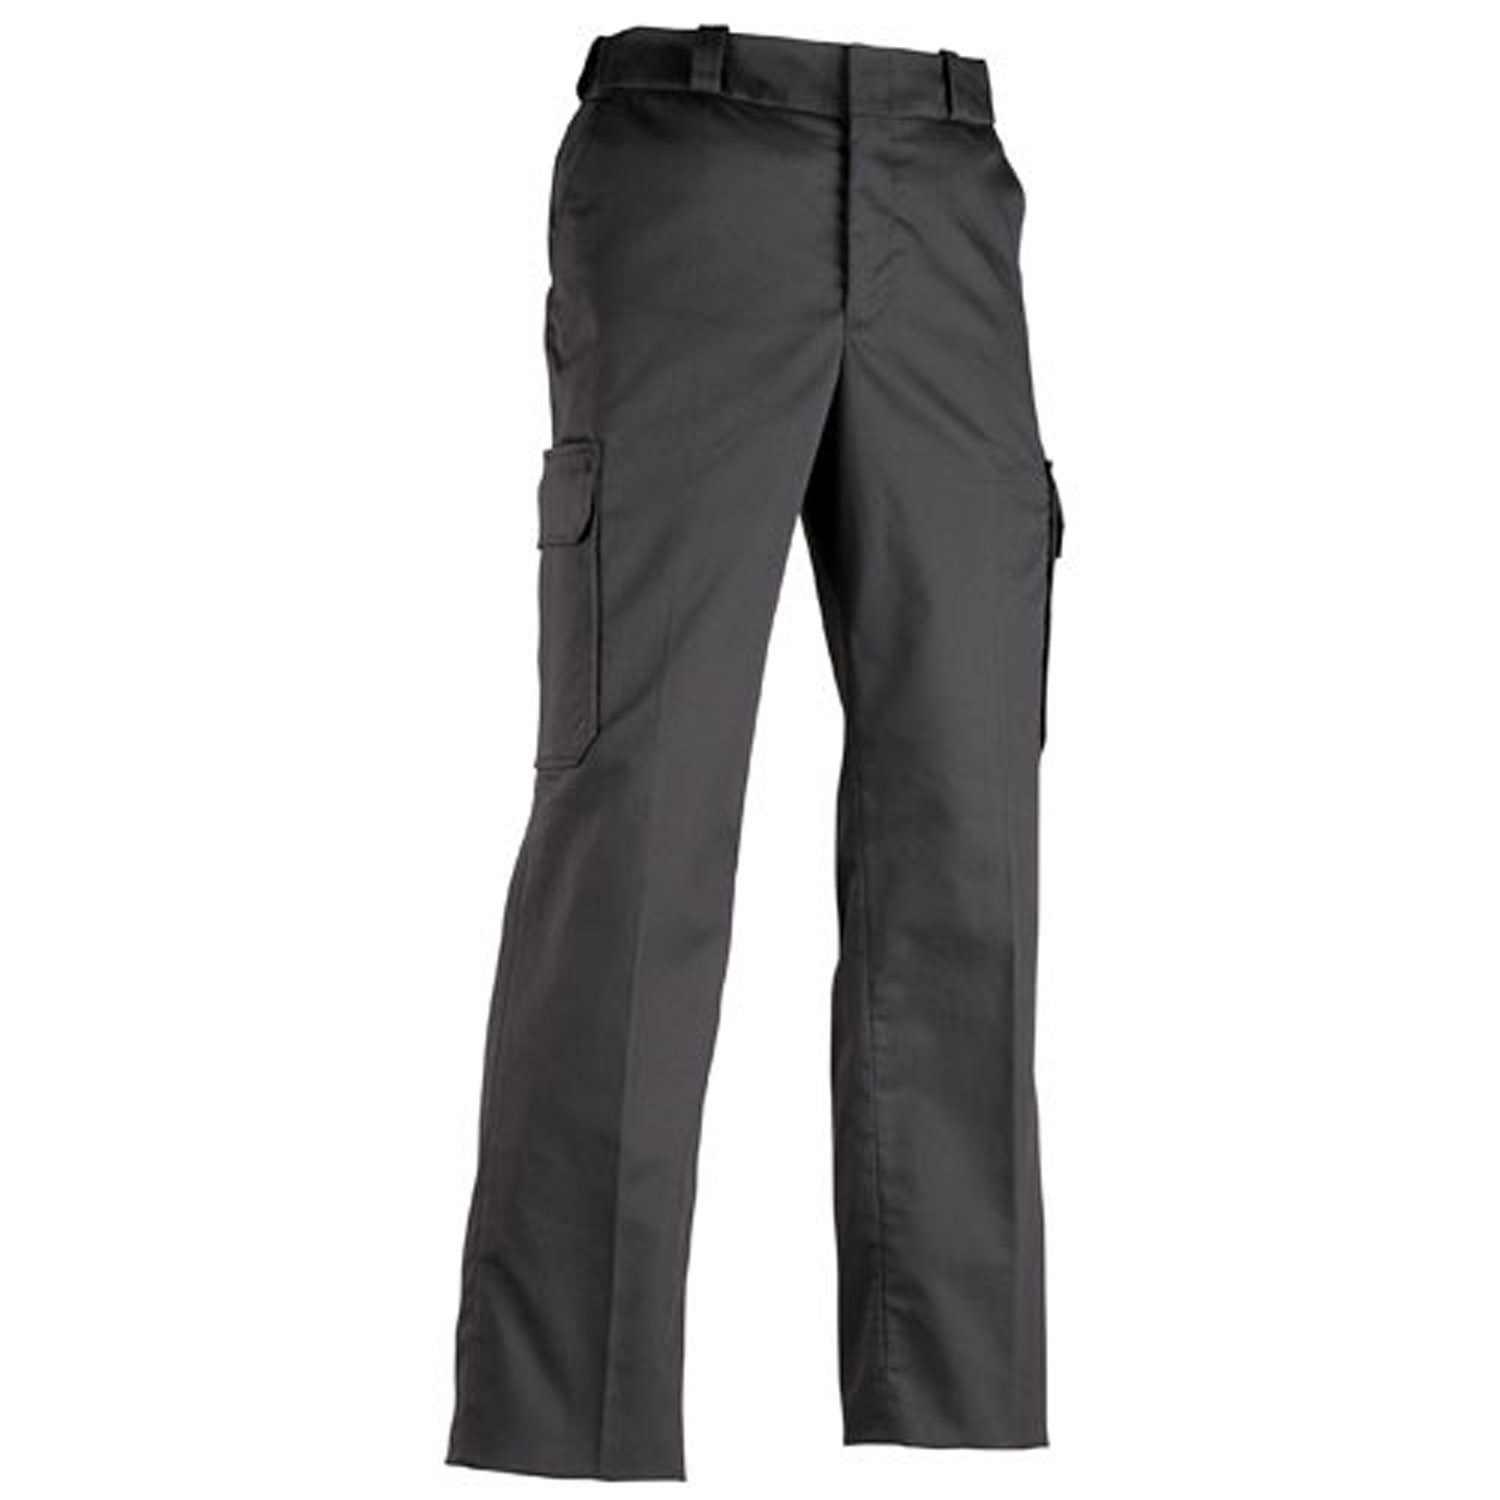 Wonderful Fjallraven Mounts Its Cargo Pockets On  A Awesome Work Pant The Kebs, With Their Lighter Materials, Is Best For Active Pursuits Like Hunting And Hiking Note That All The Merits I Just Described